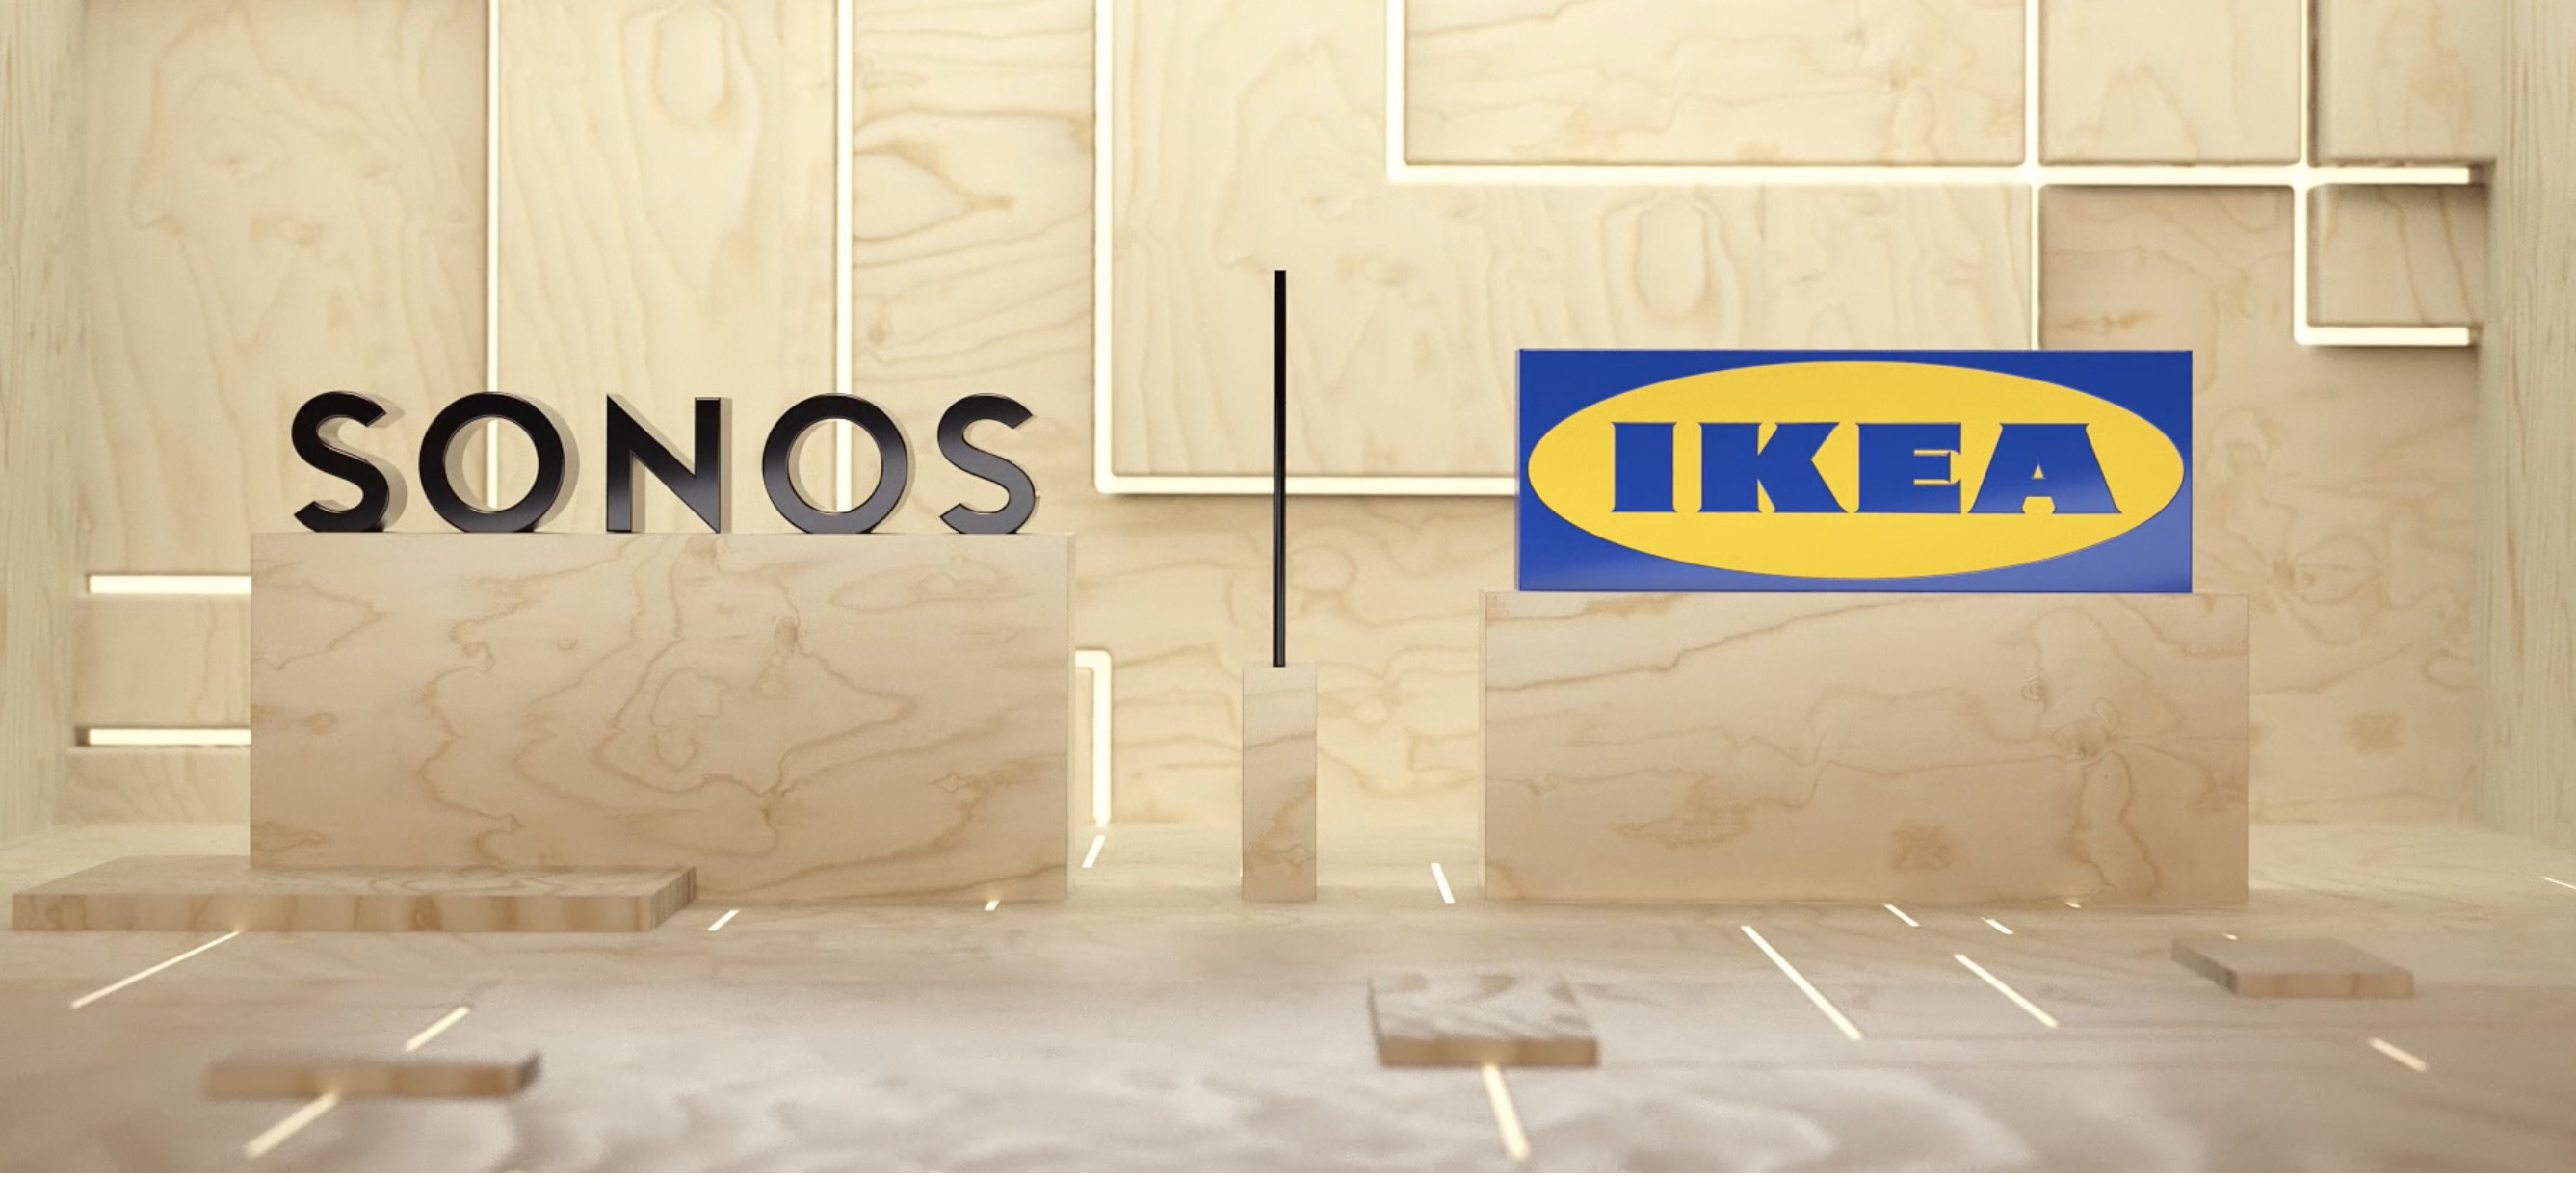 Ikea and Sonos Tease Mysterious Smart Home Collaboration